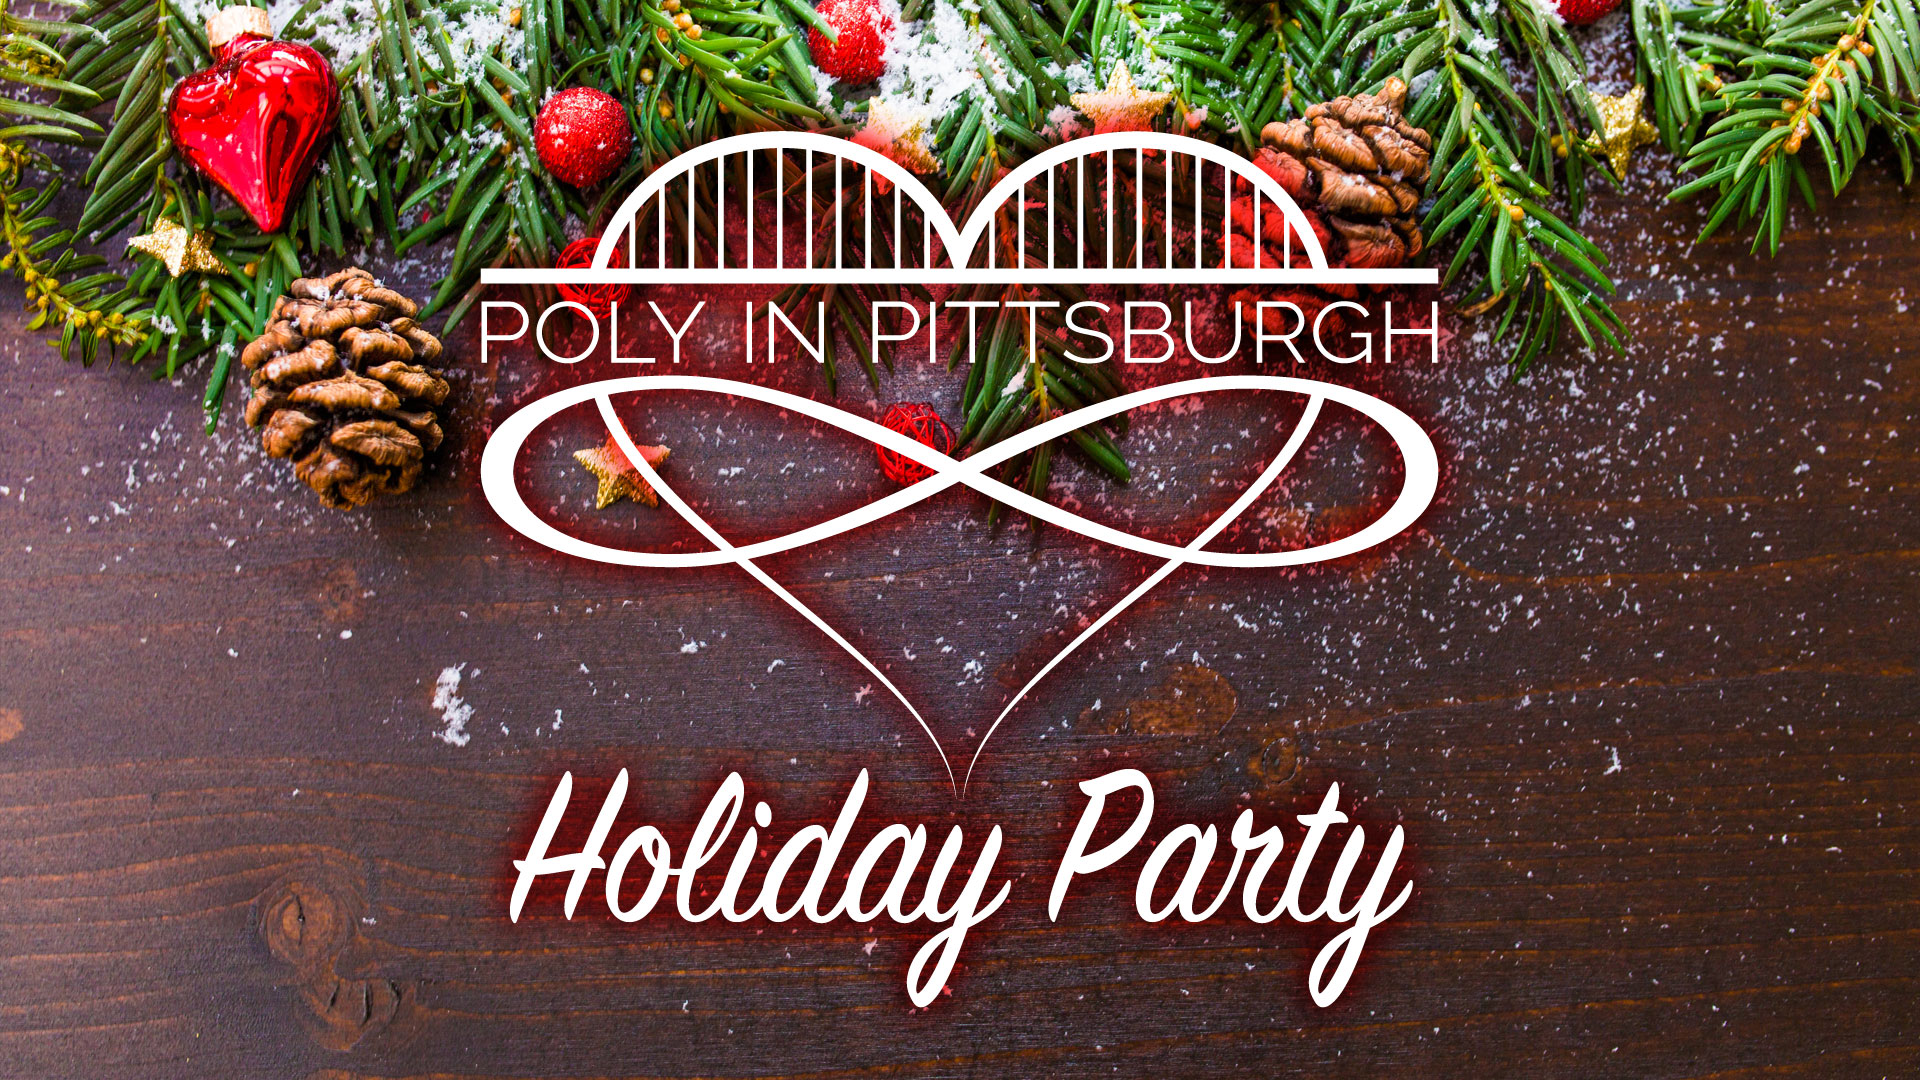 Poly in Pittsburgh Holiday Party